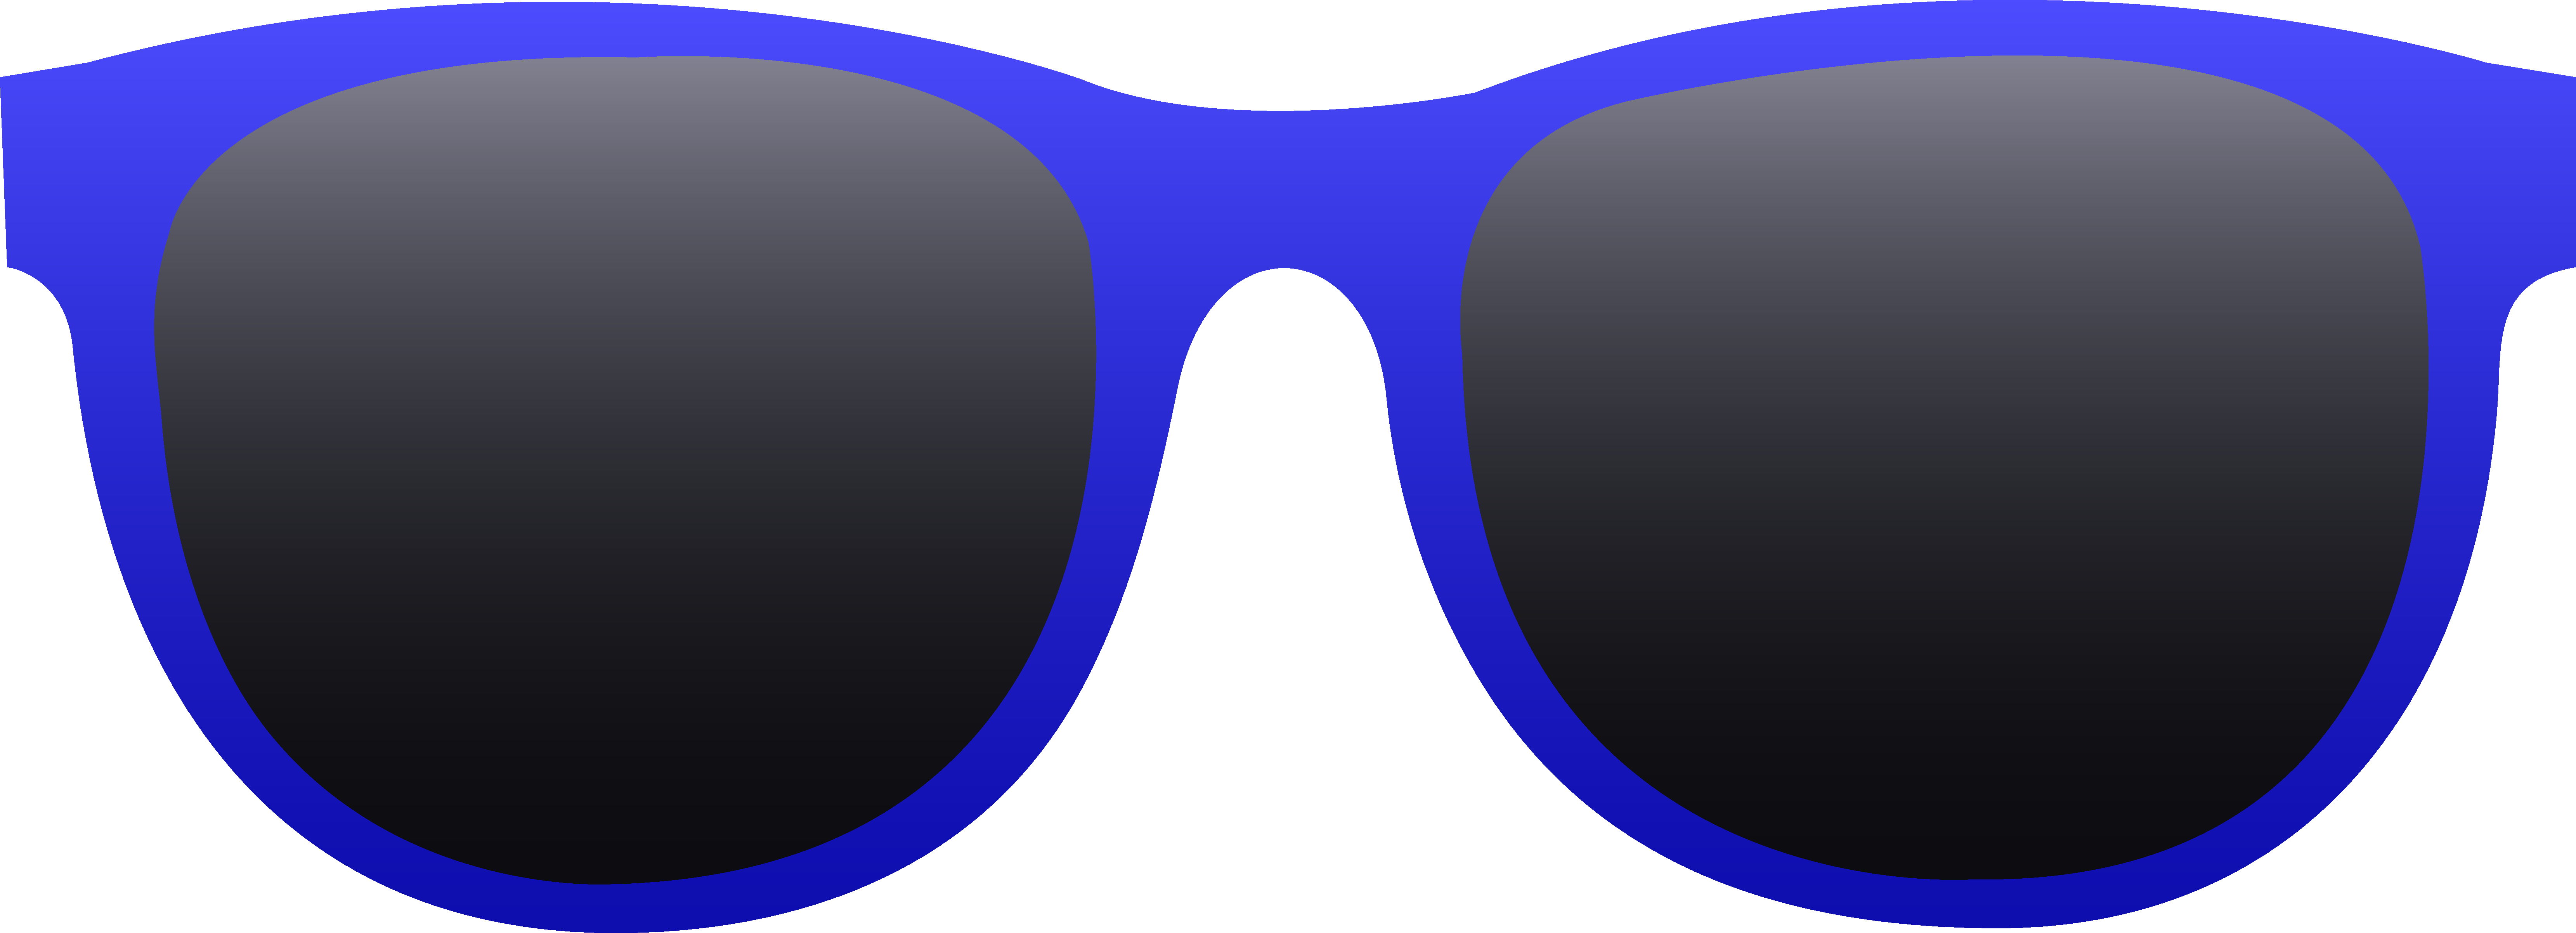 6638x2404 Collection Of Free Transparent Sunglasses Vector. Download On Ubisafe